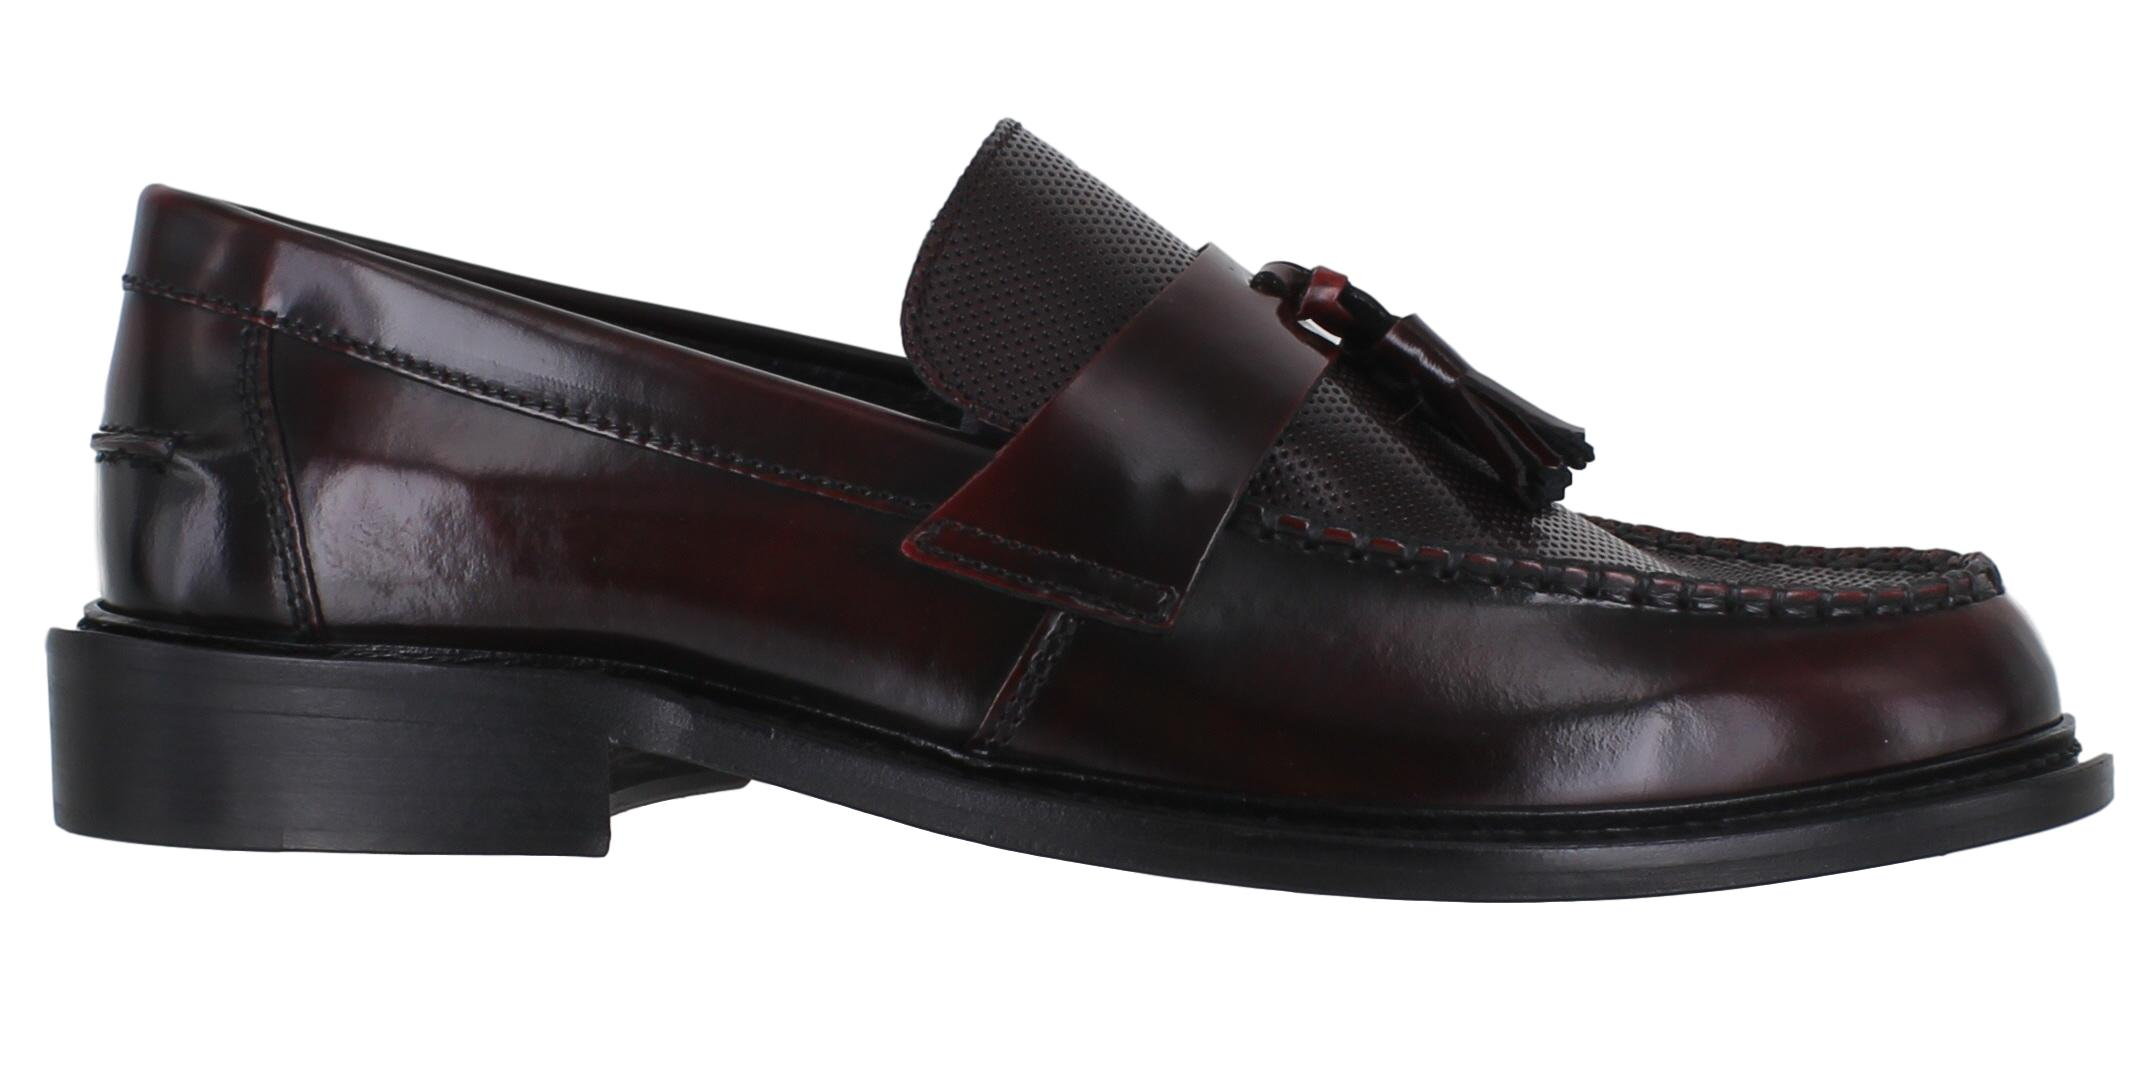 95906d45533 Details about Mens Delicious Junction Ace Punch Leather MOD SKA Tassel  Loafer Sizes 6 to 12